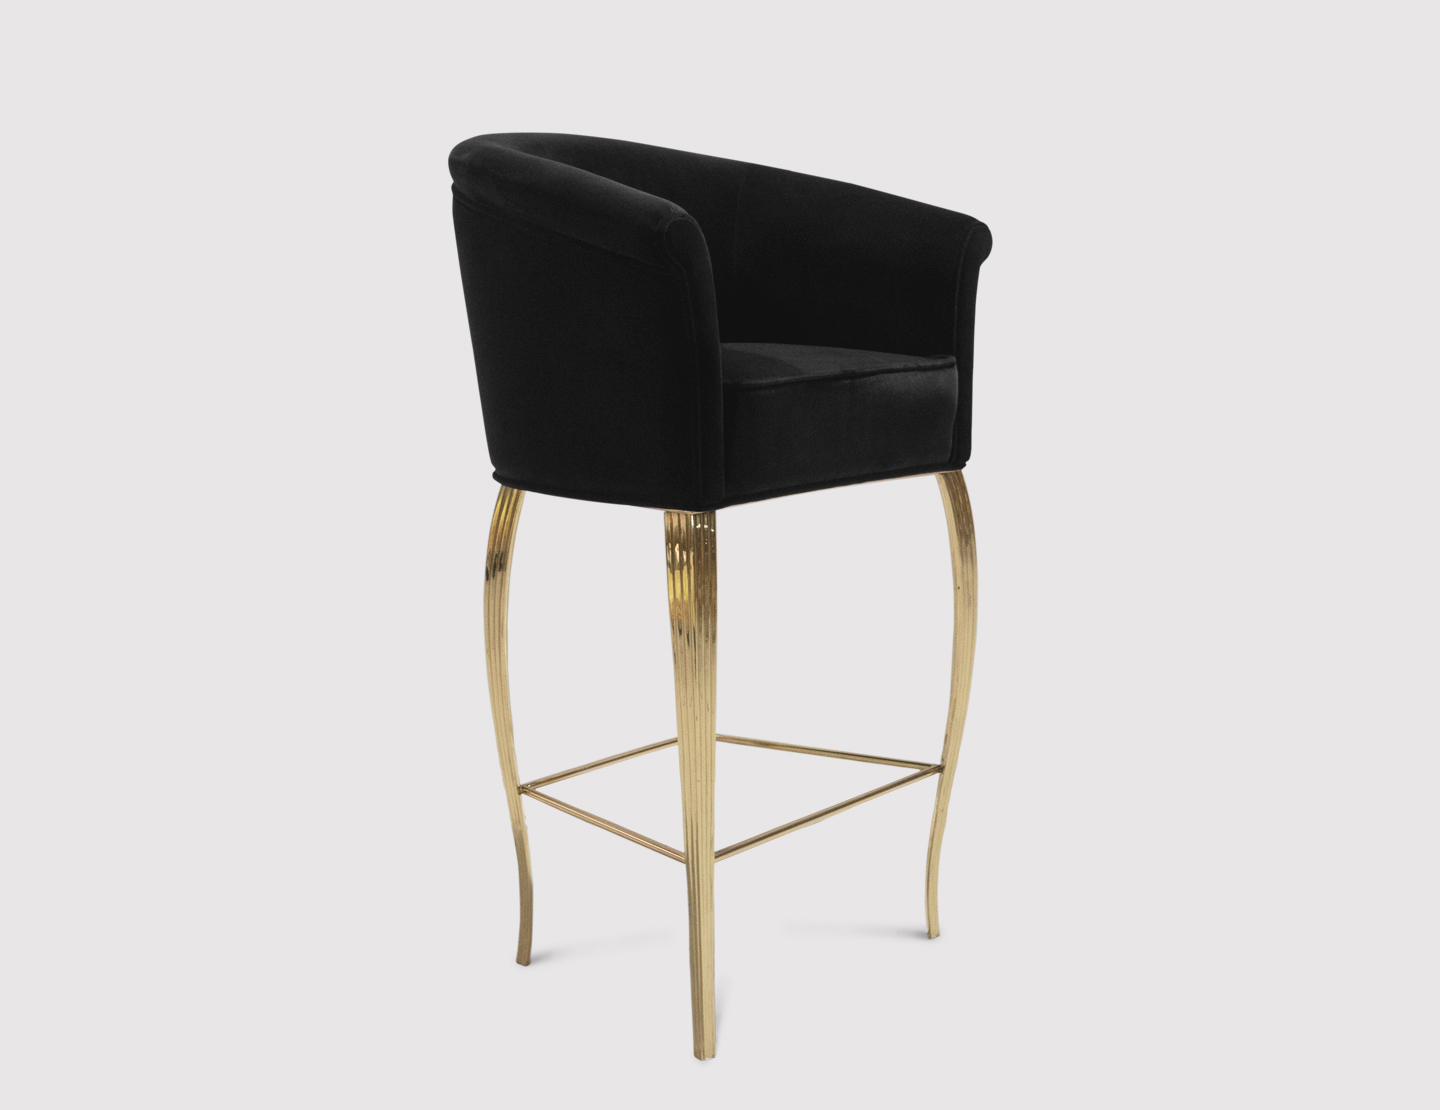 MIMI Bar Stool | Bar Stool design by Koket